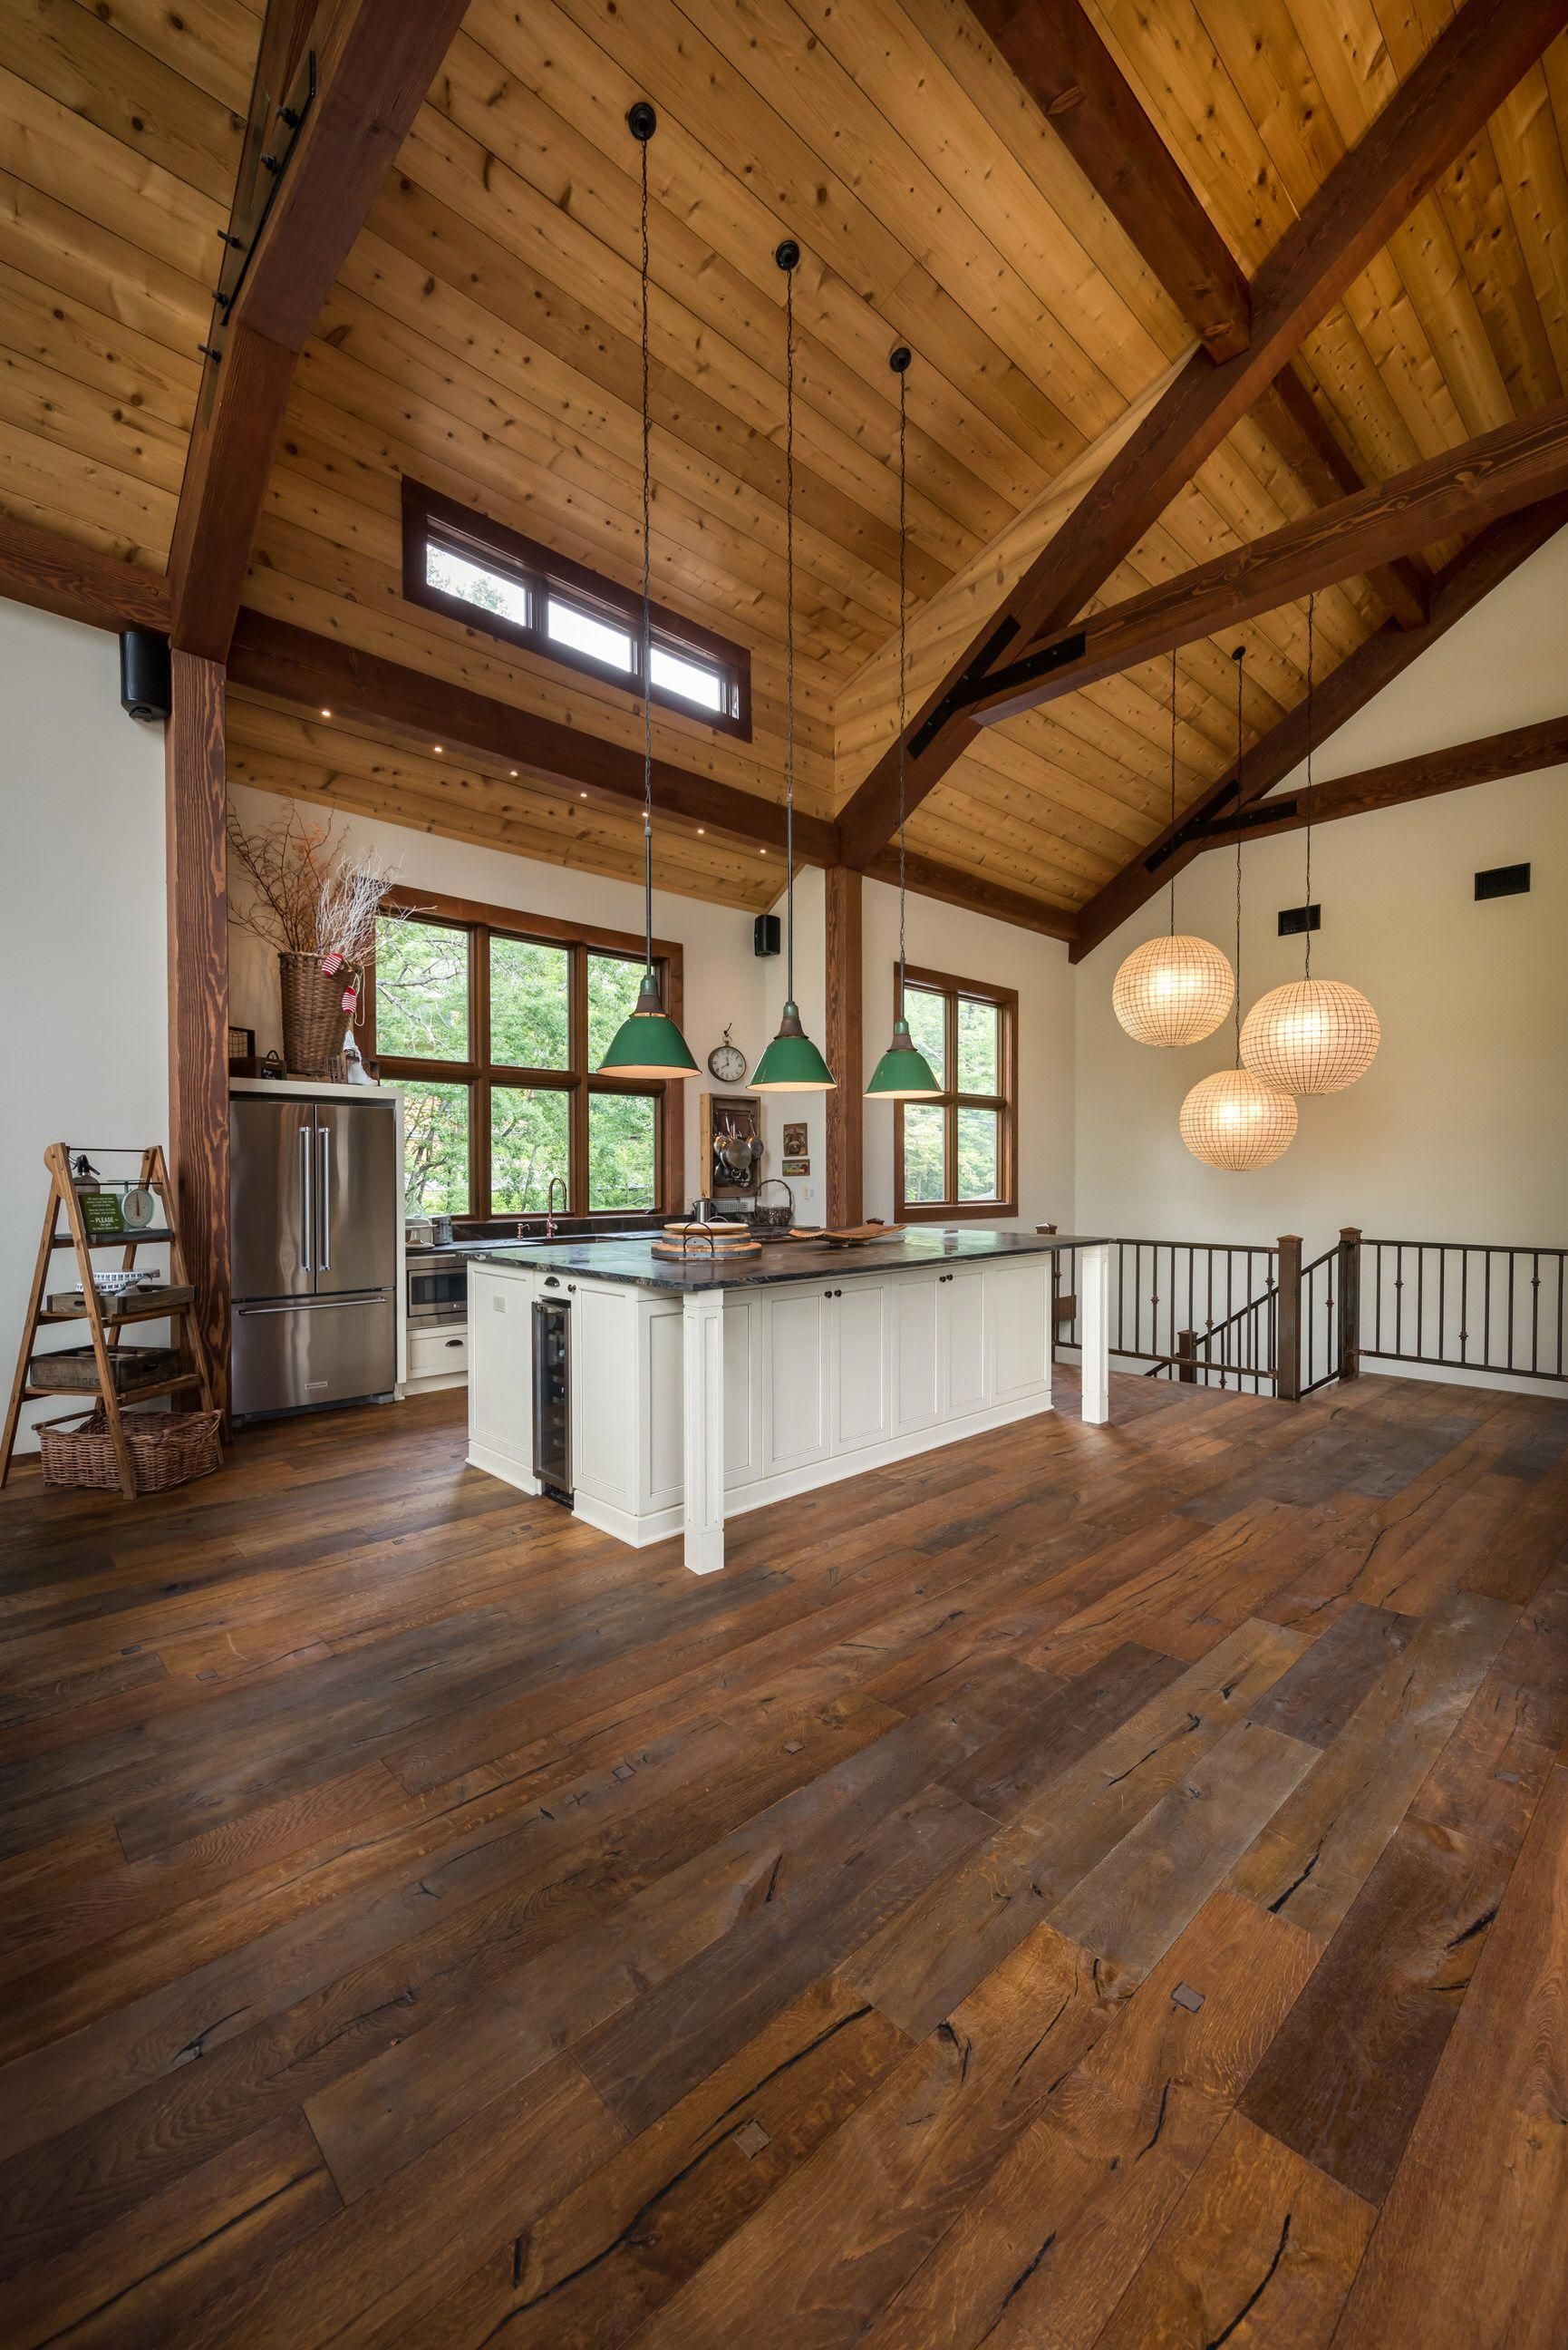 Timberframe Ski Lodge Plan Called The Catskill Cabindecor In 2020 Log Home Interiors Rustic House Rustic Houses Exterior